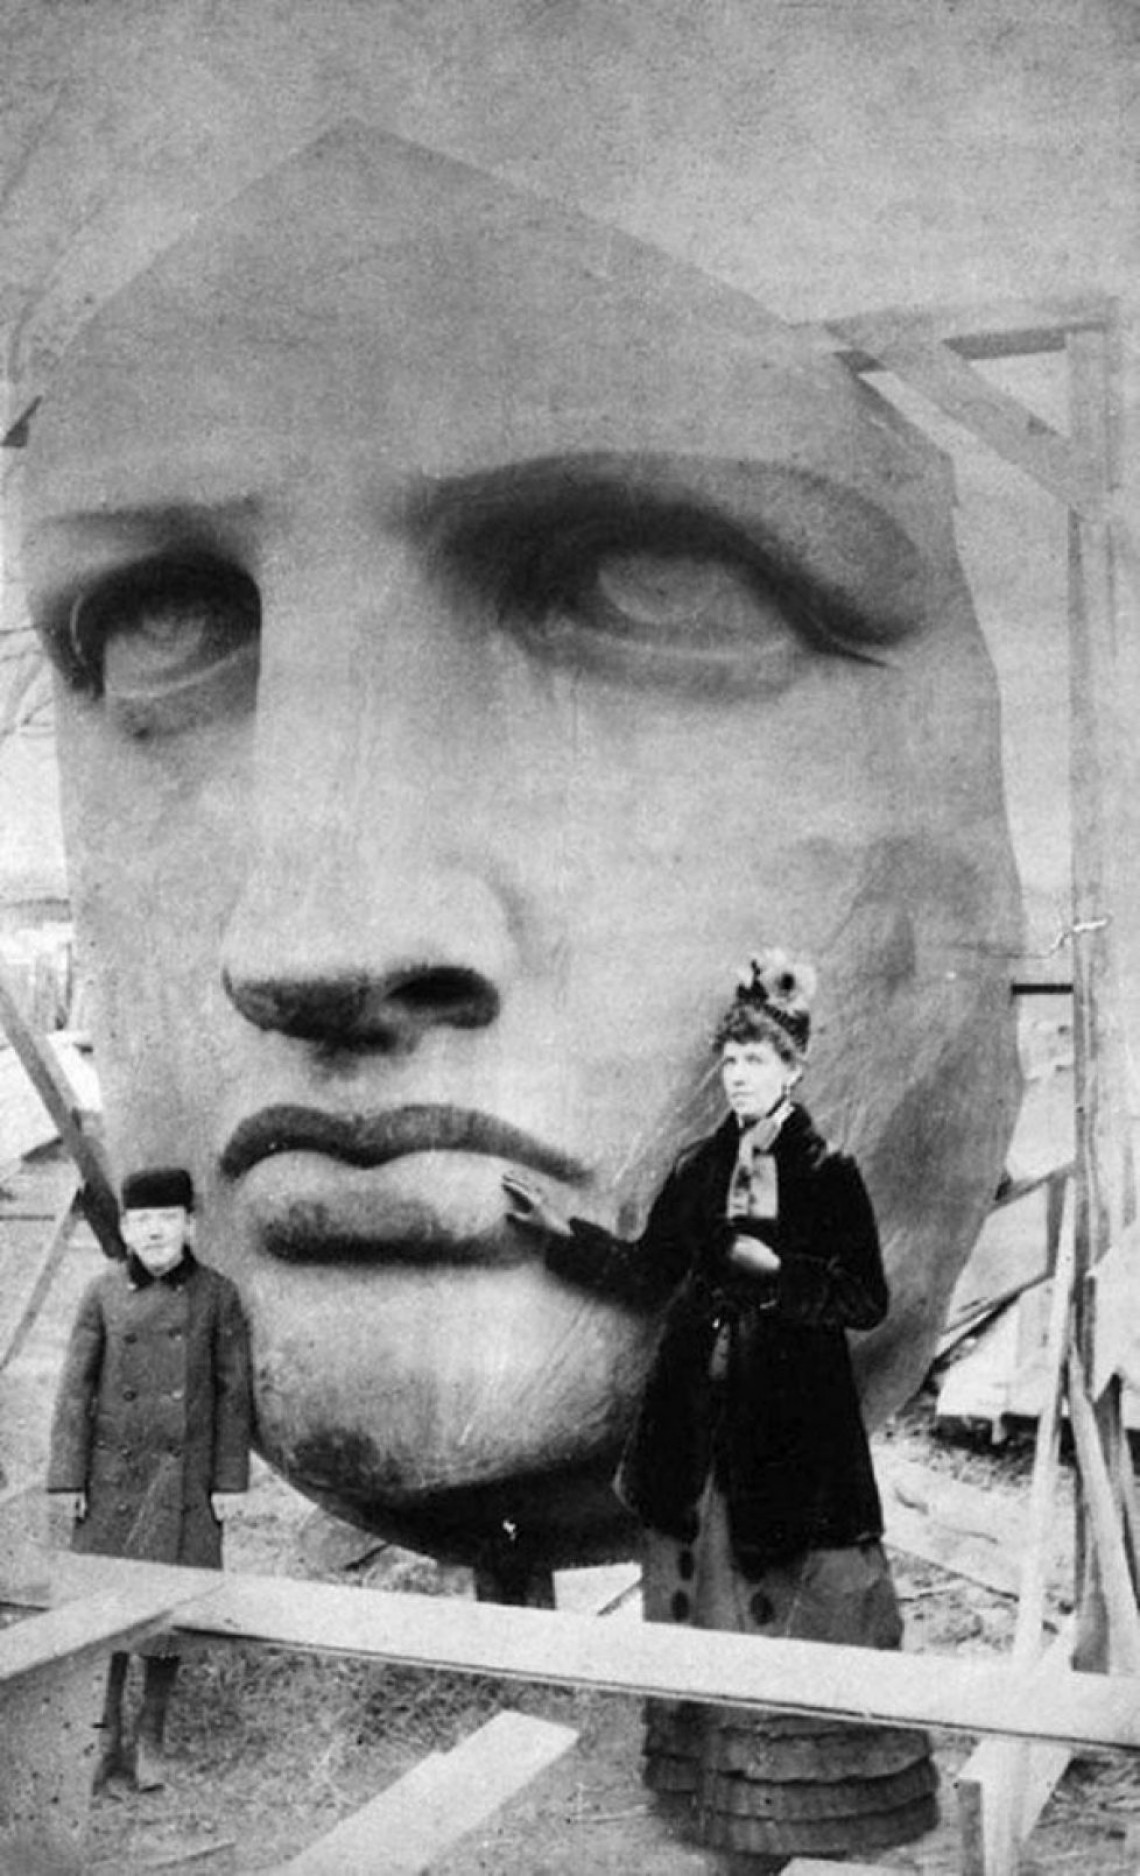 unpacking-the-head-of-the-statue-of-liberty-1885